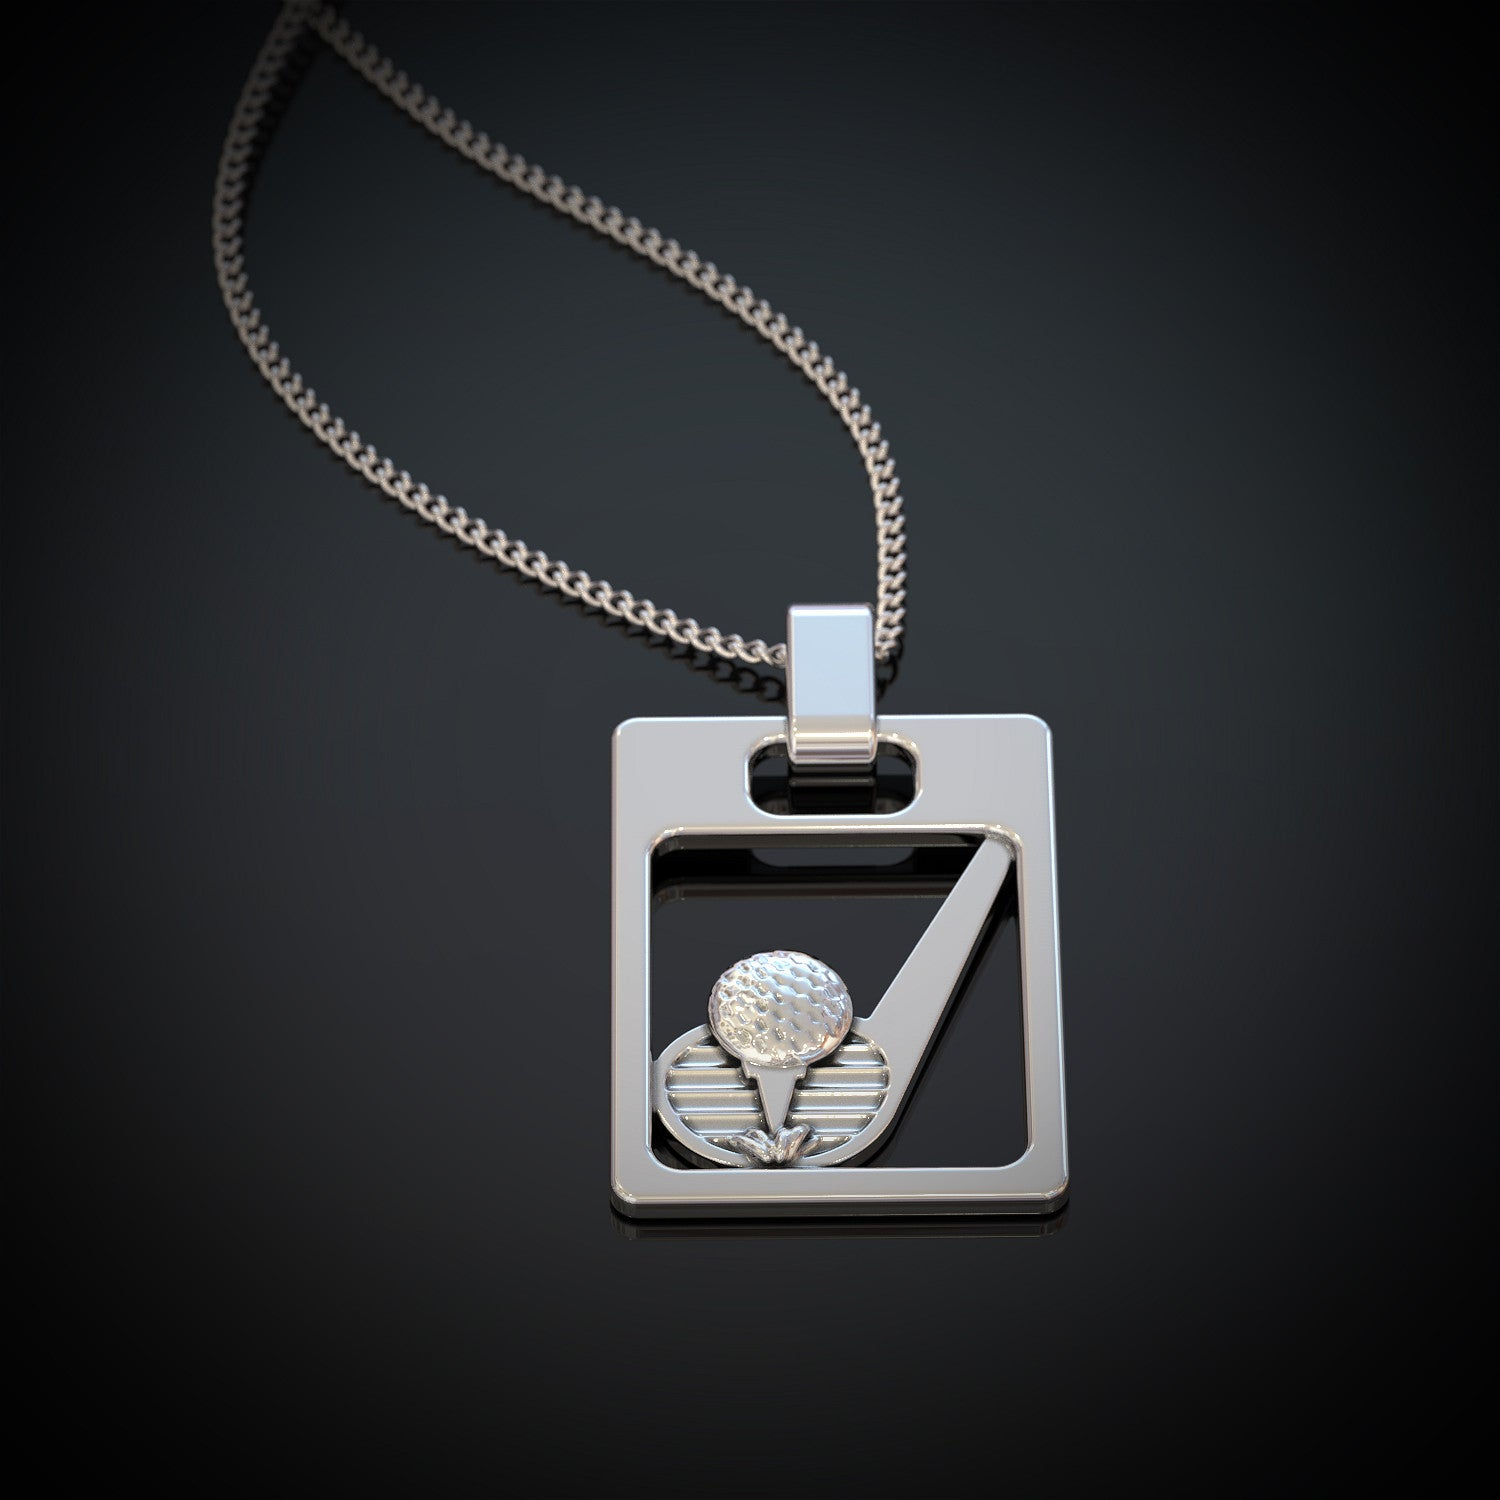 Golf pendant shineon golf pendant aloadofball Choice Image